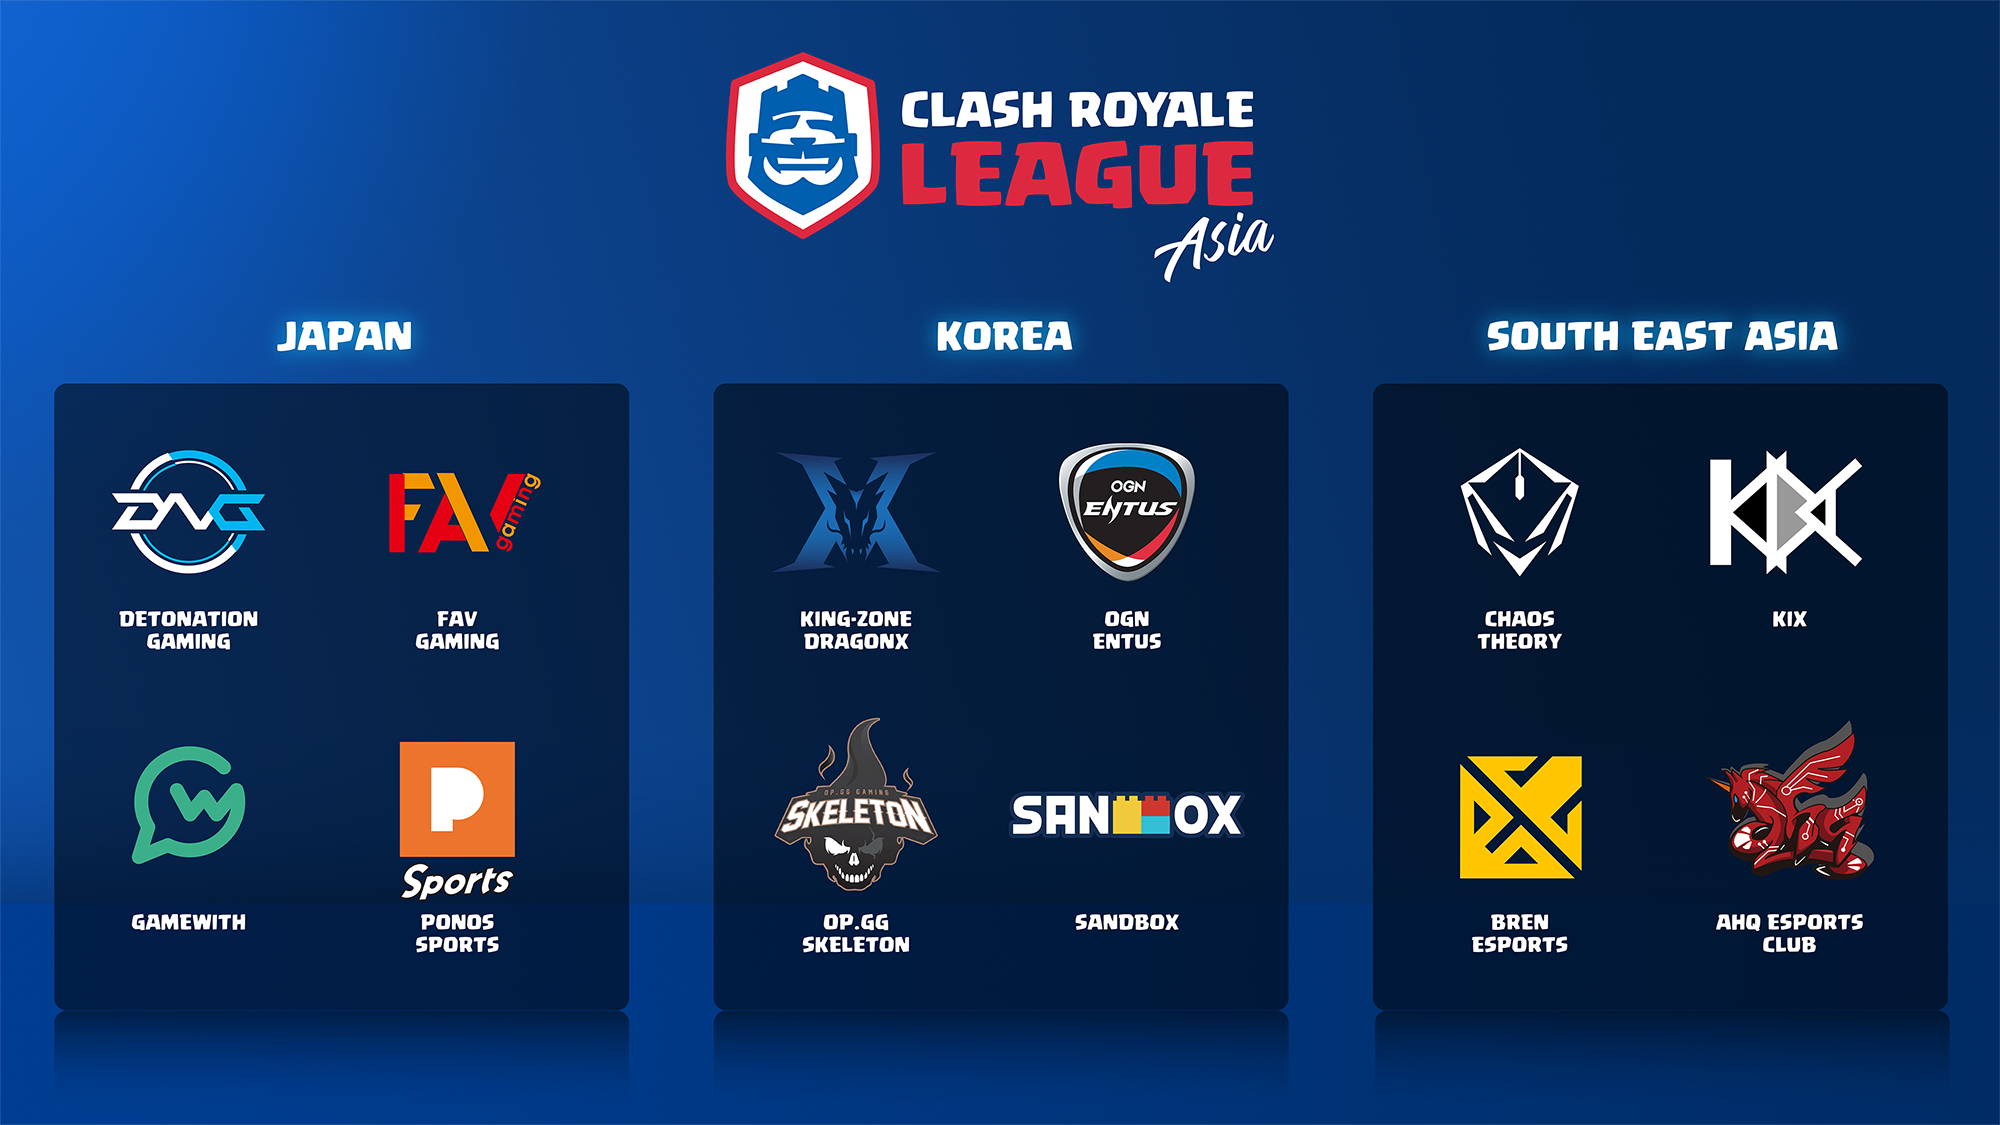 Four Southeast Asian Teams To Join The Clash Royale League Twenty8two